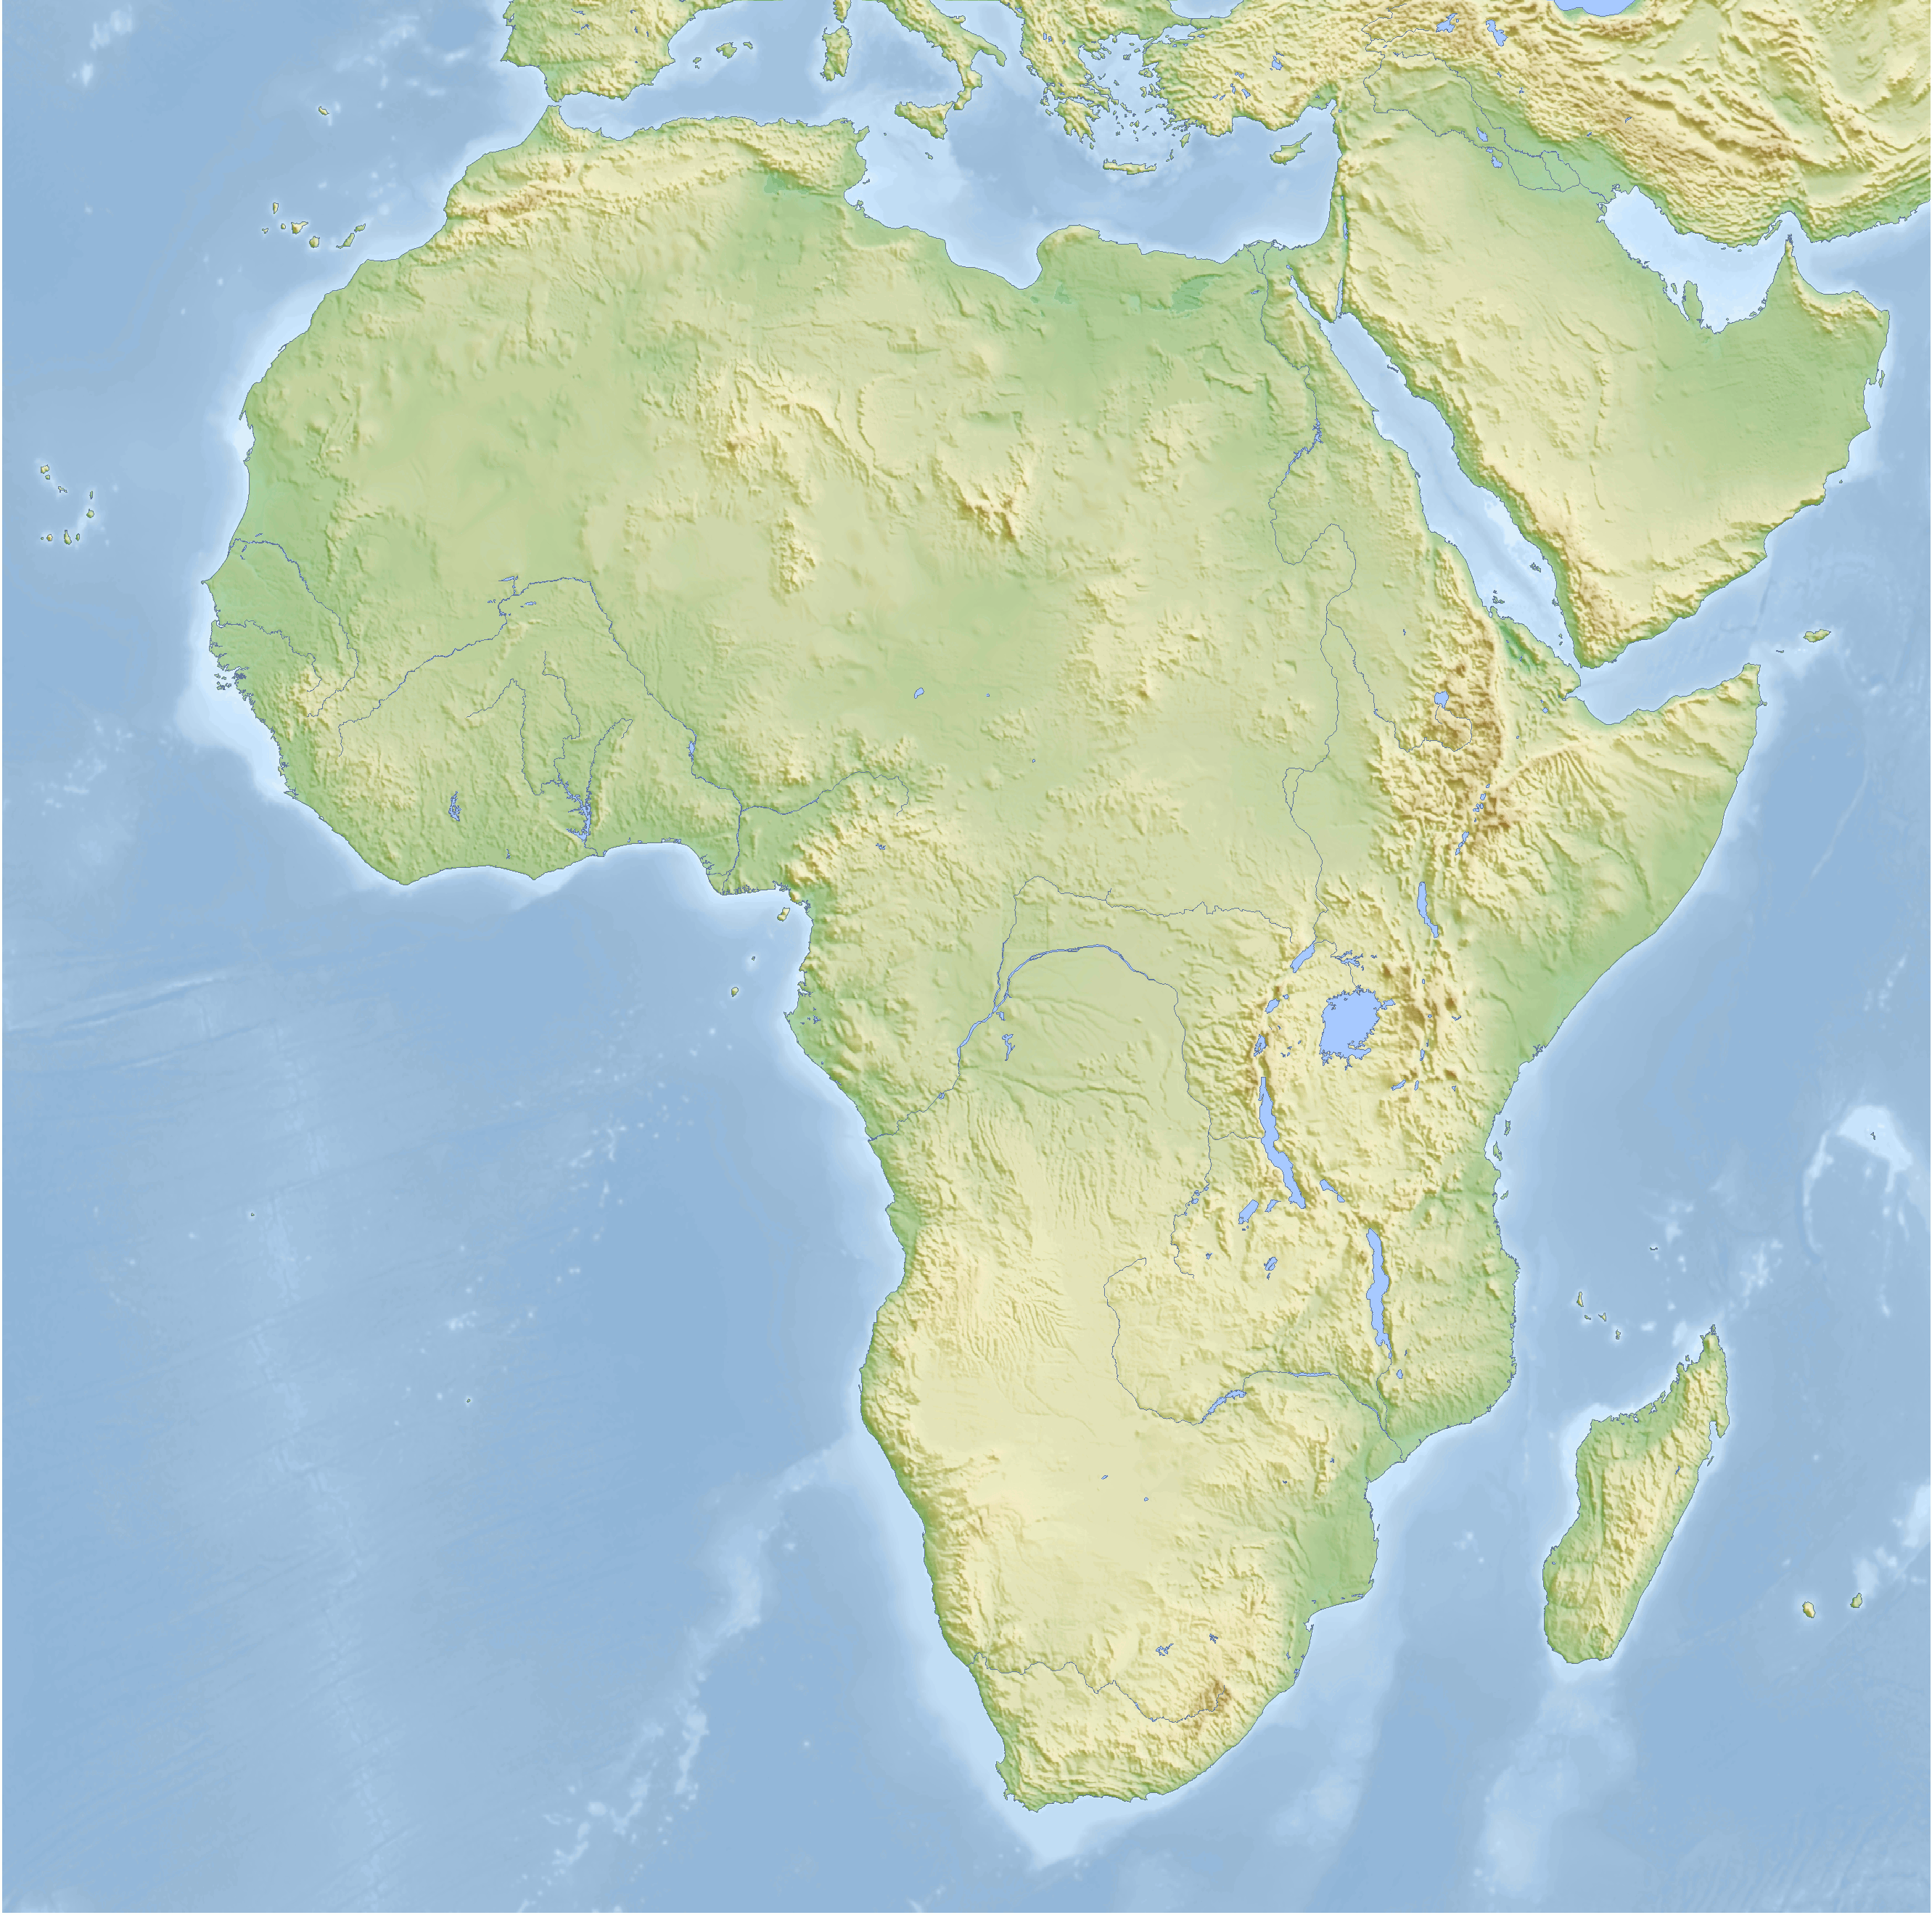 Elevation Map Of Africa With Key.File Africa Topography Map Png Wikimedia Commons